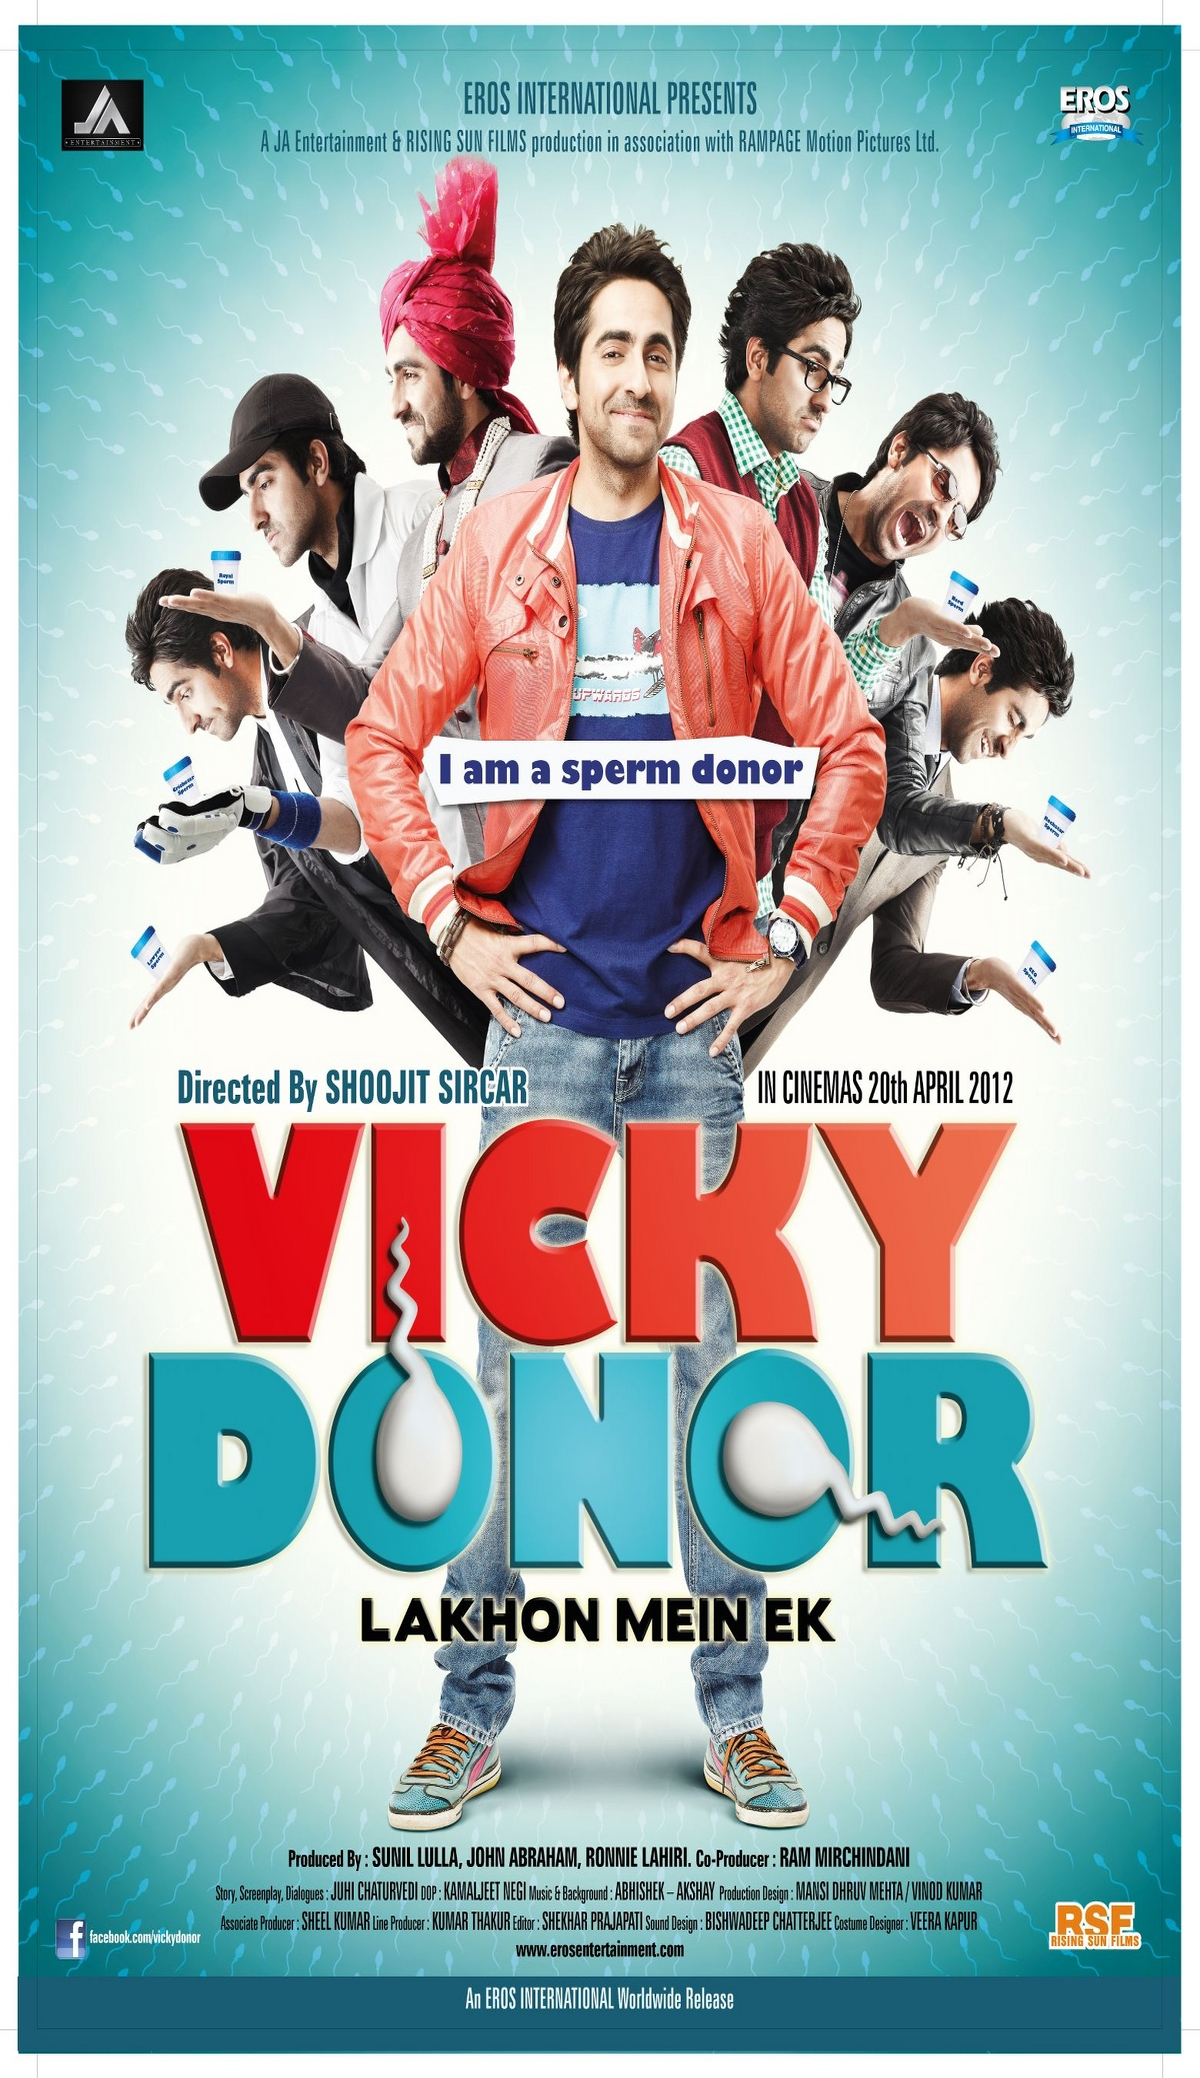 Vicky Donor - Movie Poster #1 (Original)